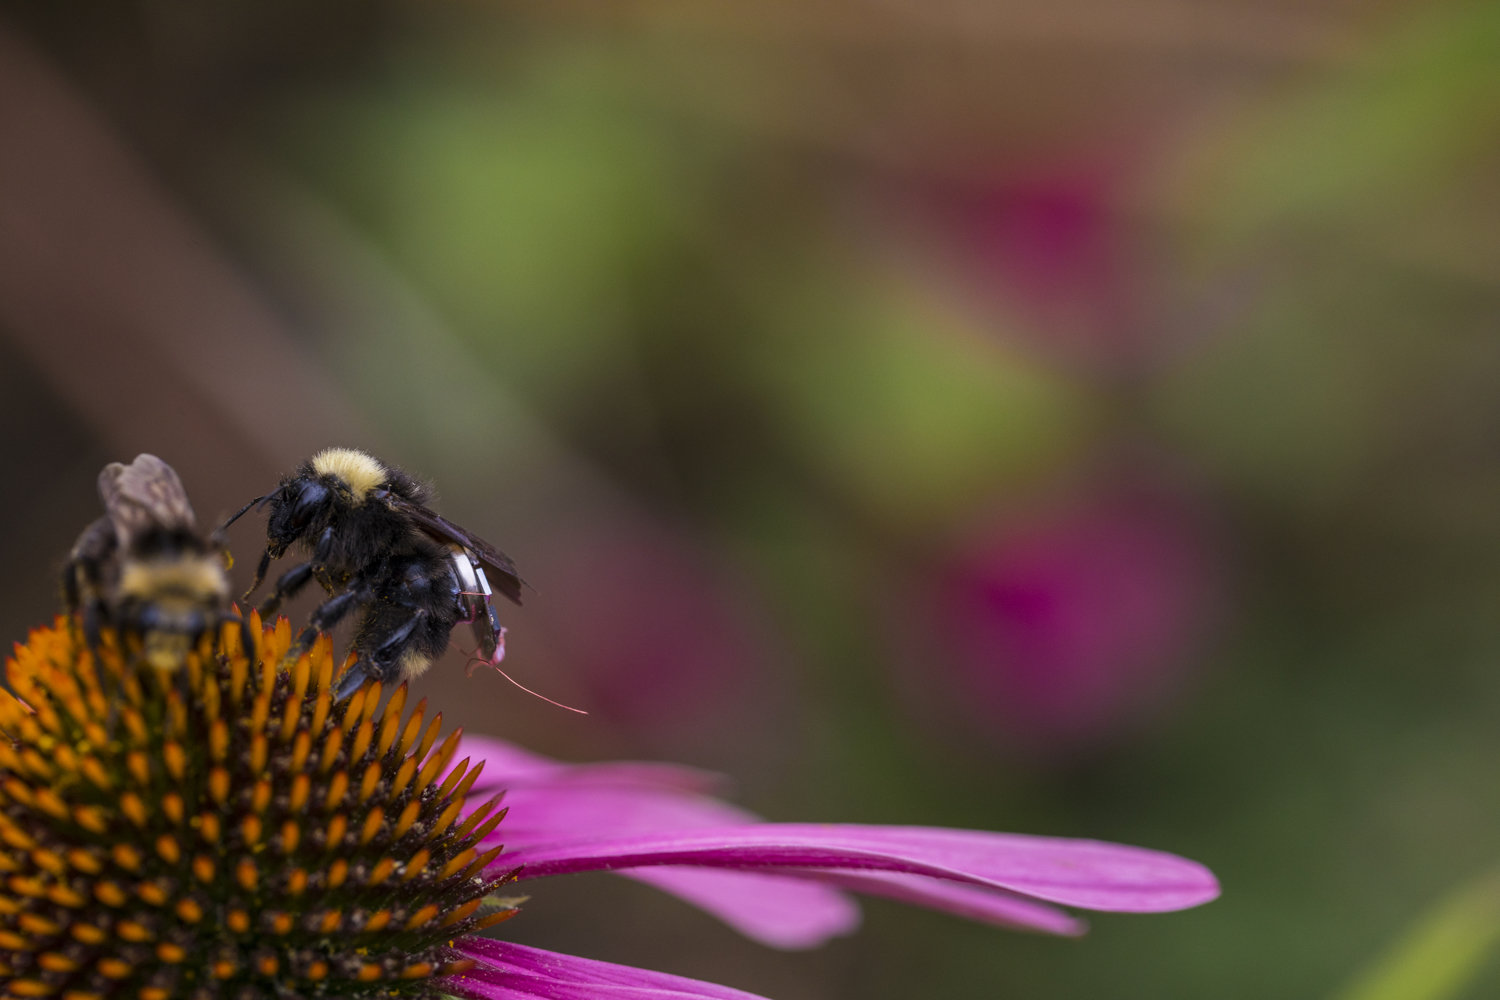 Researchers create first sensor package that can ride aboard bees - Tech Xplore